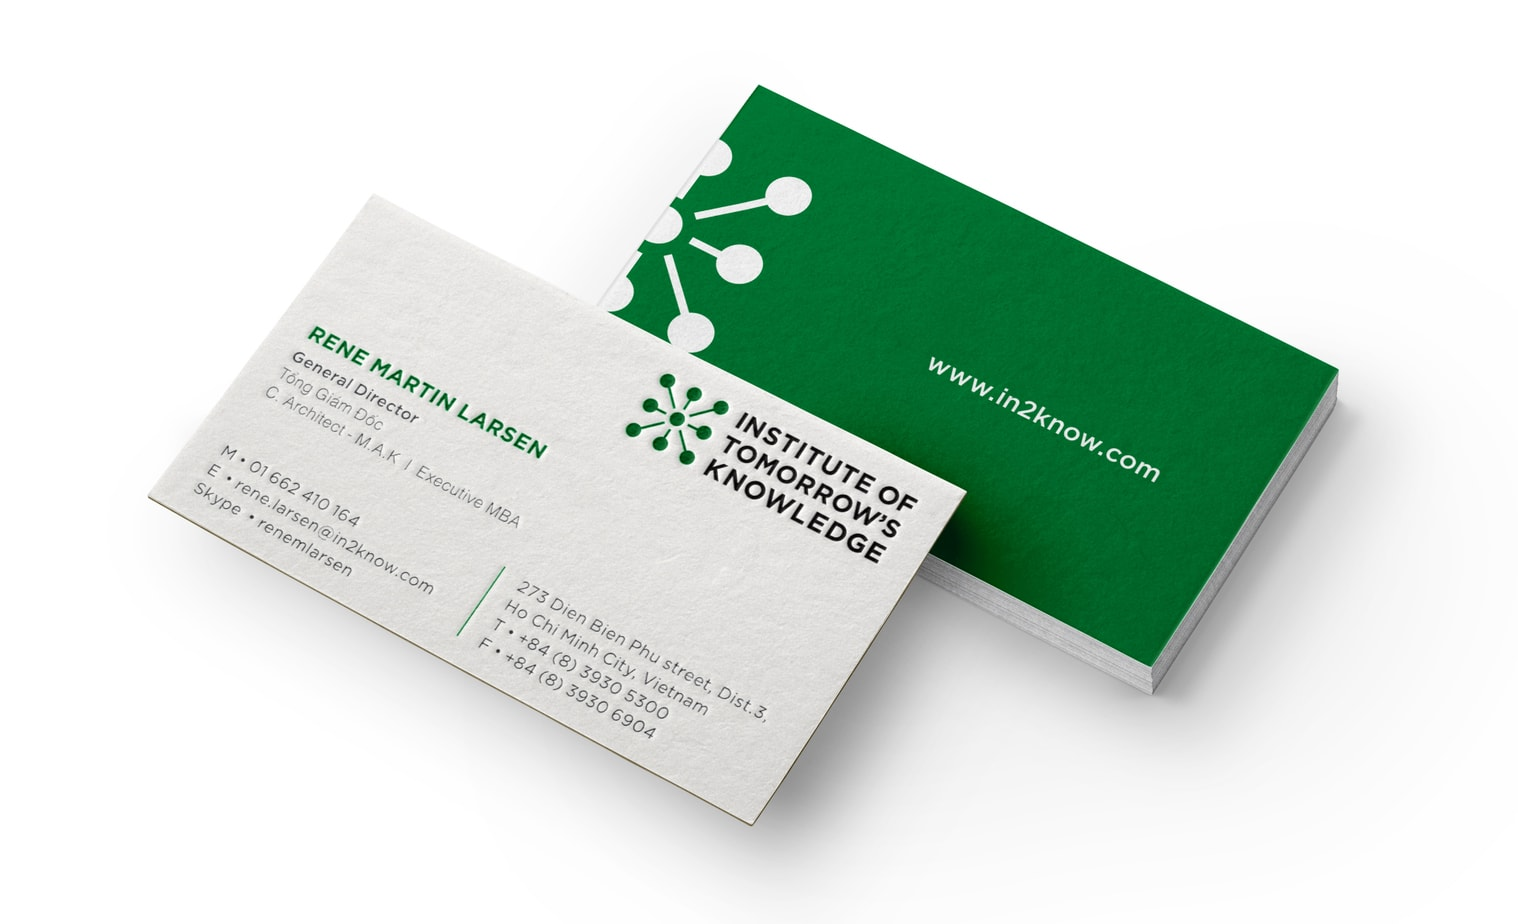 The Color Club - Business Card Mockup